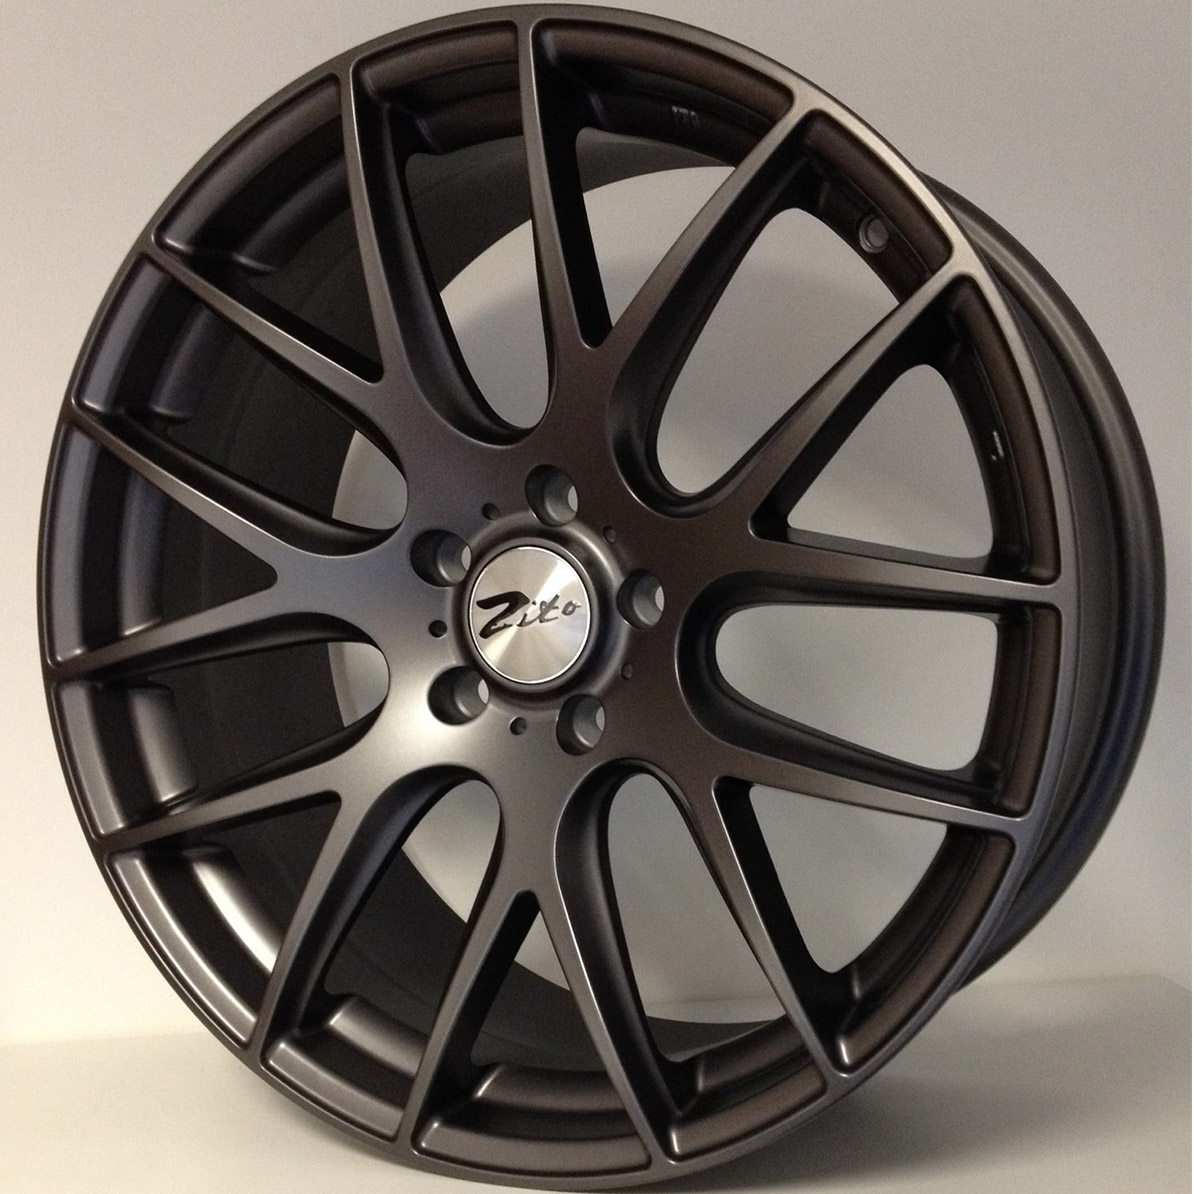 "NEW 19"" ZITO 935 CSL GTS ALLOY WHEELS IN MATT GUNMETAL, DEEPER CONCAVE 9.5""REARS"